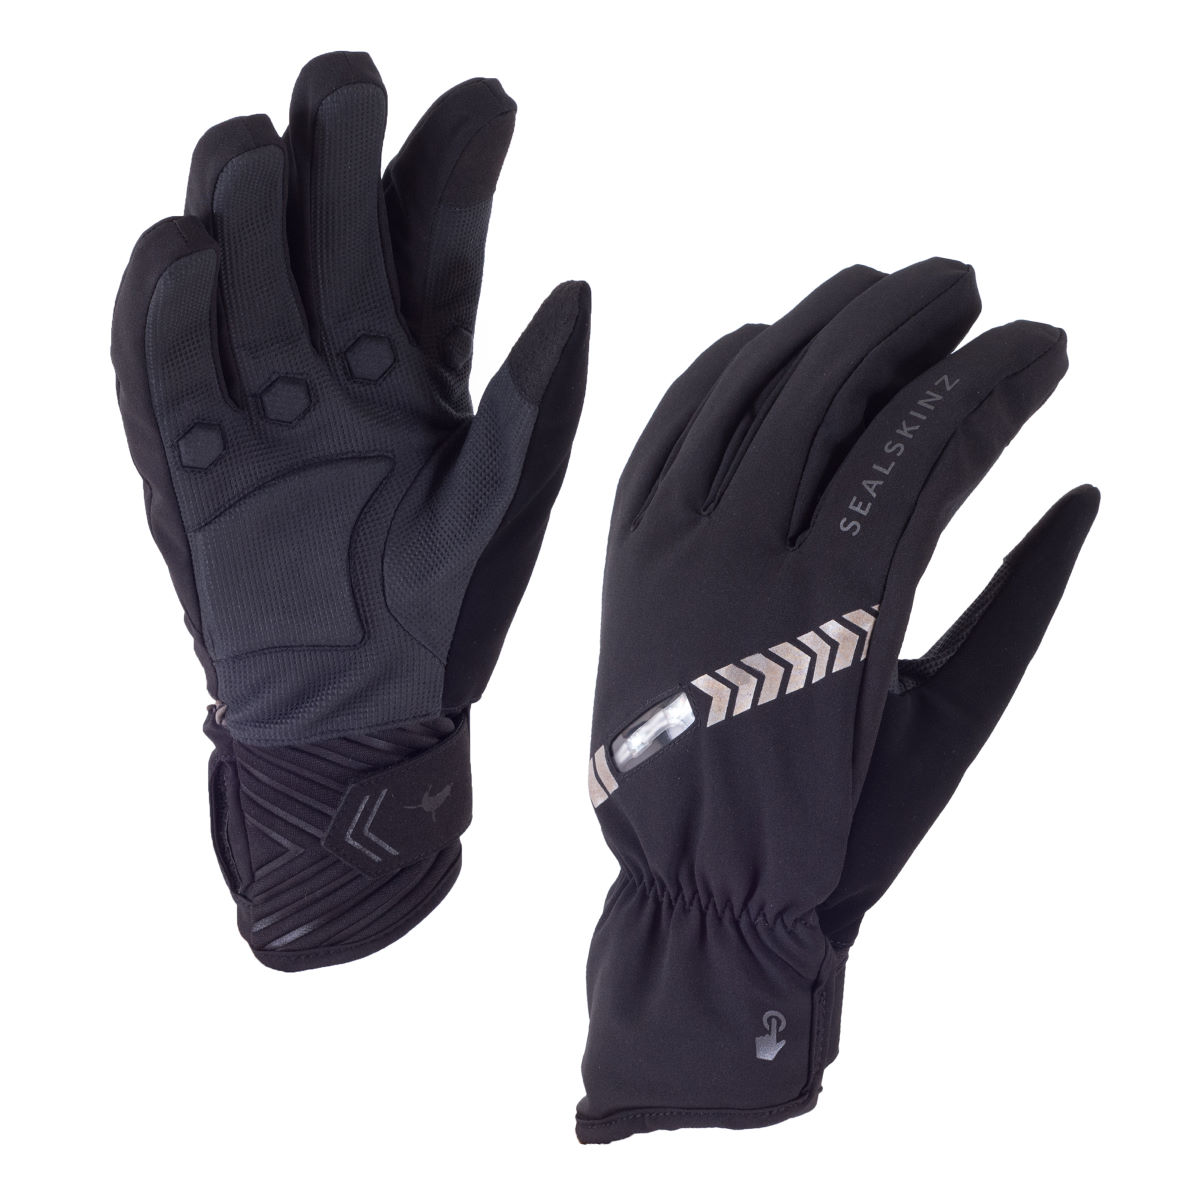 Guantes de ciclismo SealSkinz Hallo All Weather - Guantes de invierno